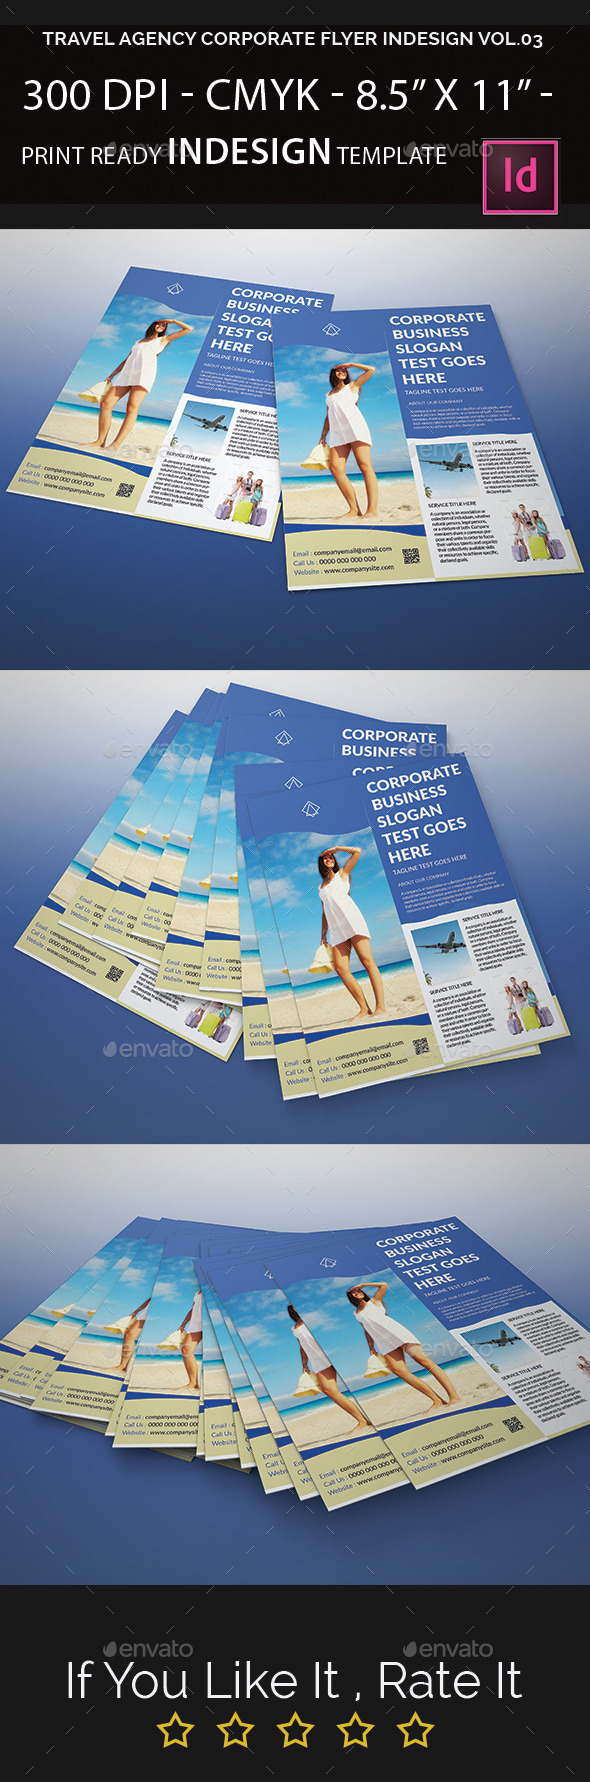 Travel Agency Corporate Flyer Indesign Vol.03 - Corporate Flyers